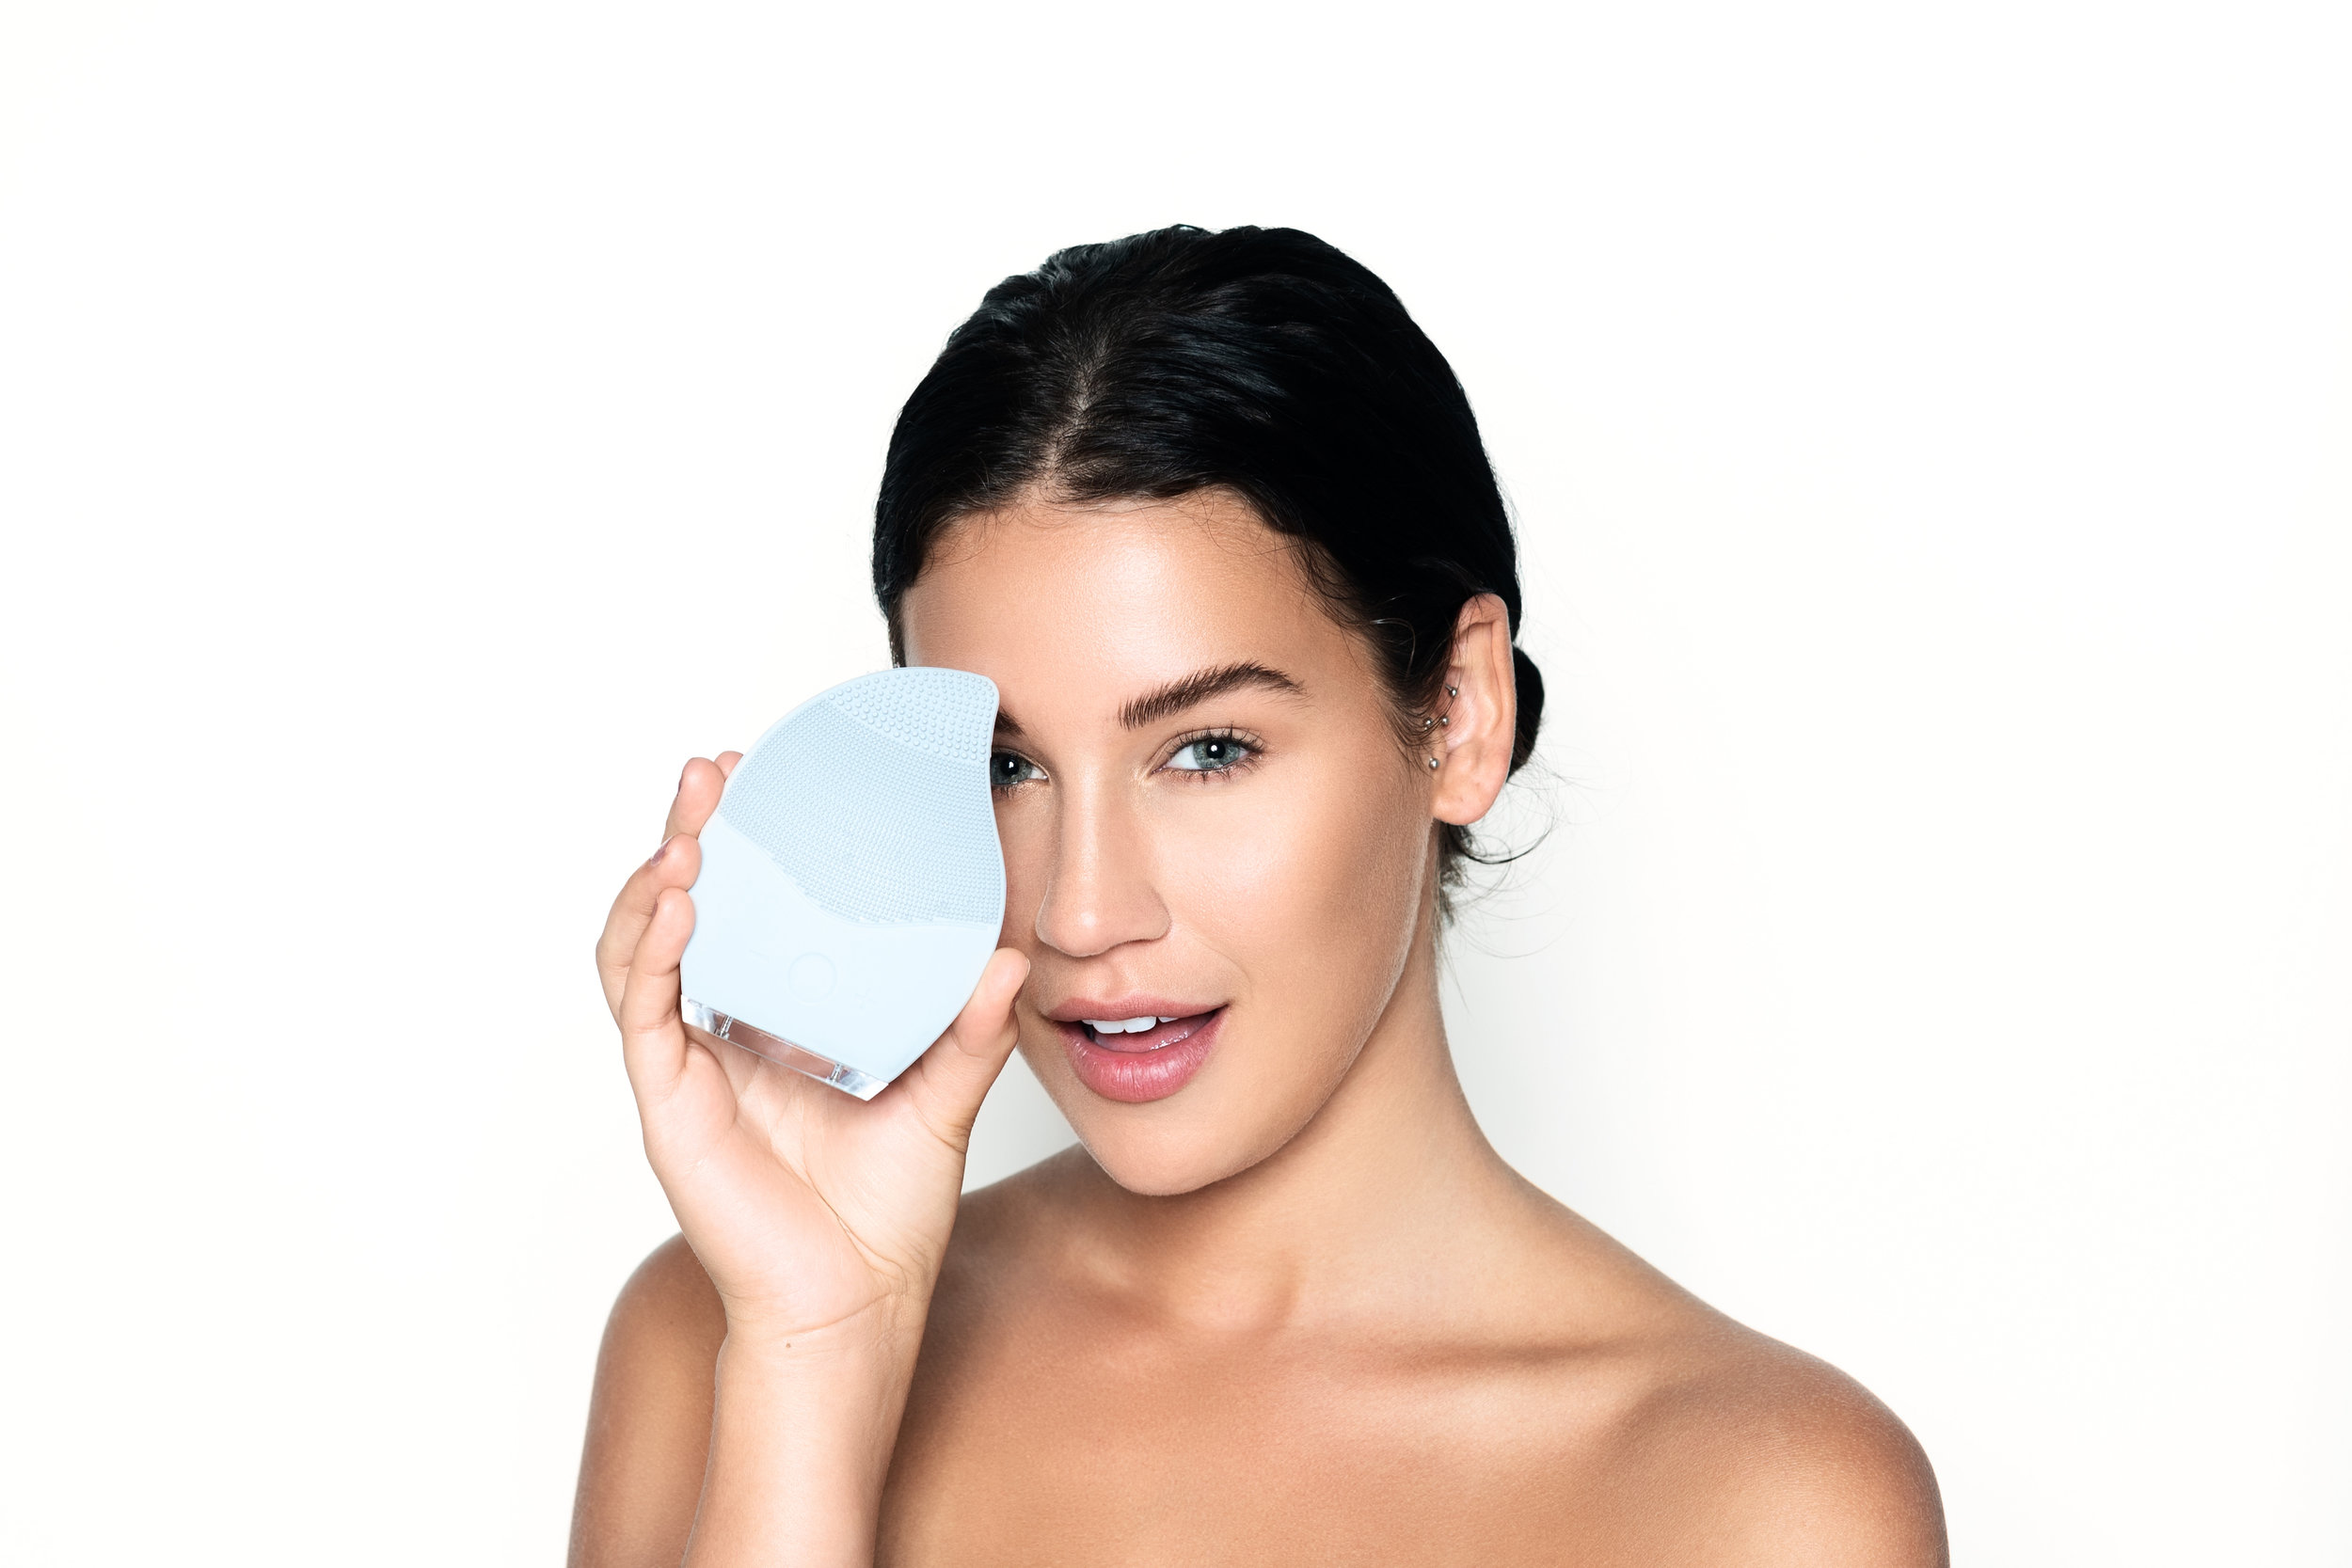 Introducing the Raindrop Facial Cleansing Brush by Cat Vo - Ready to Feel Right as Rain.